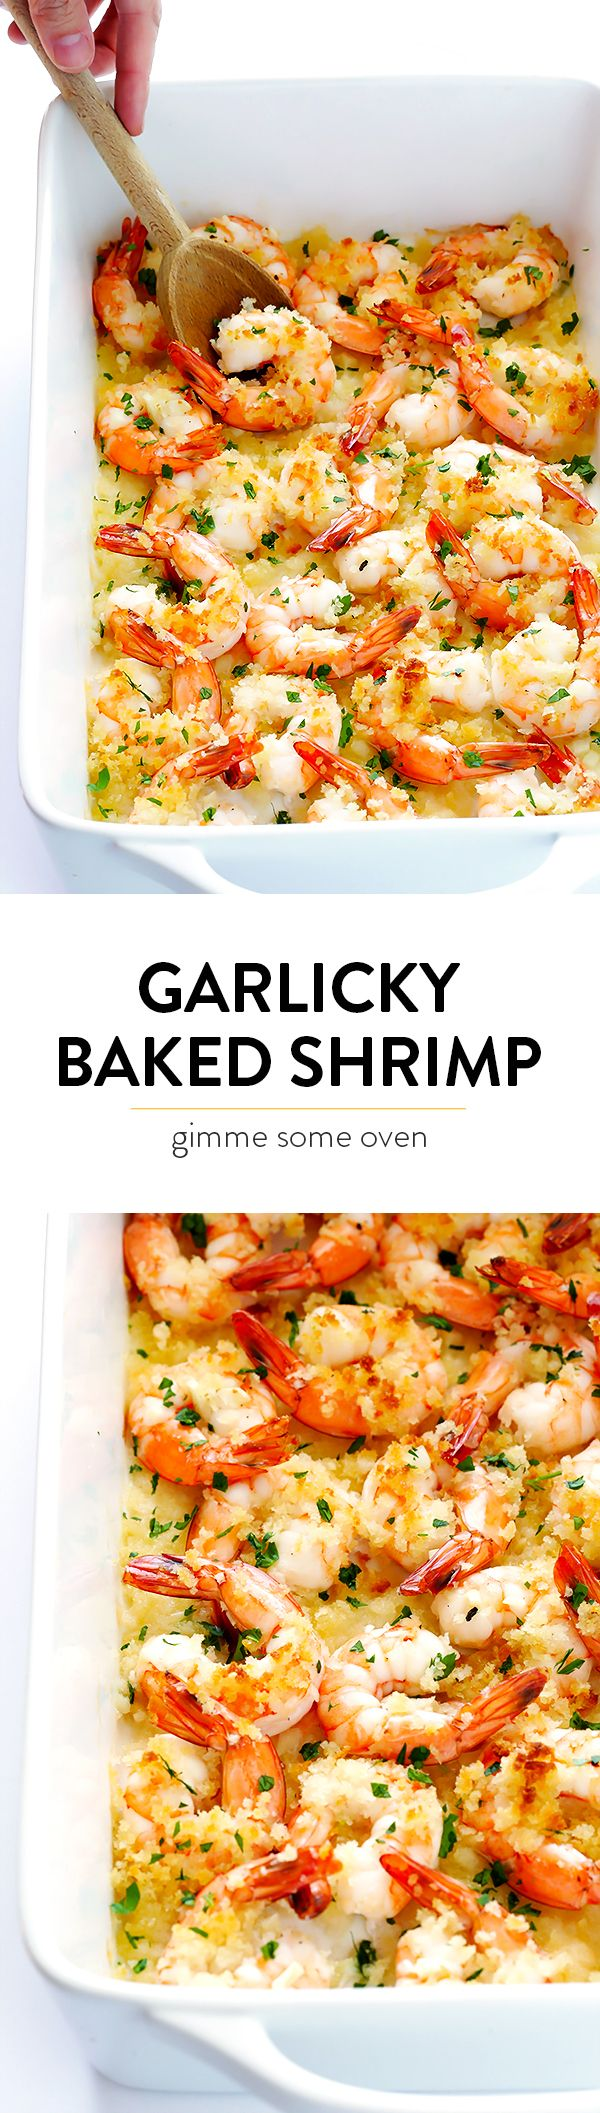 Shrimp recipes fast easy